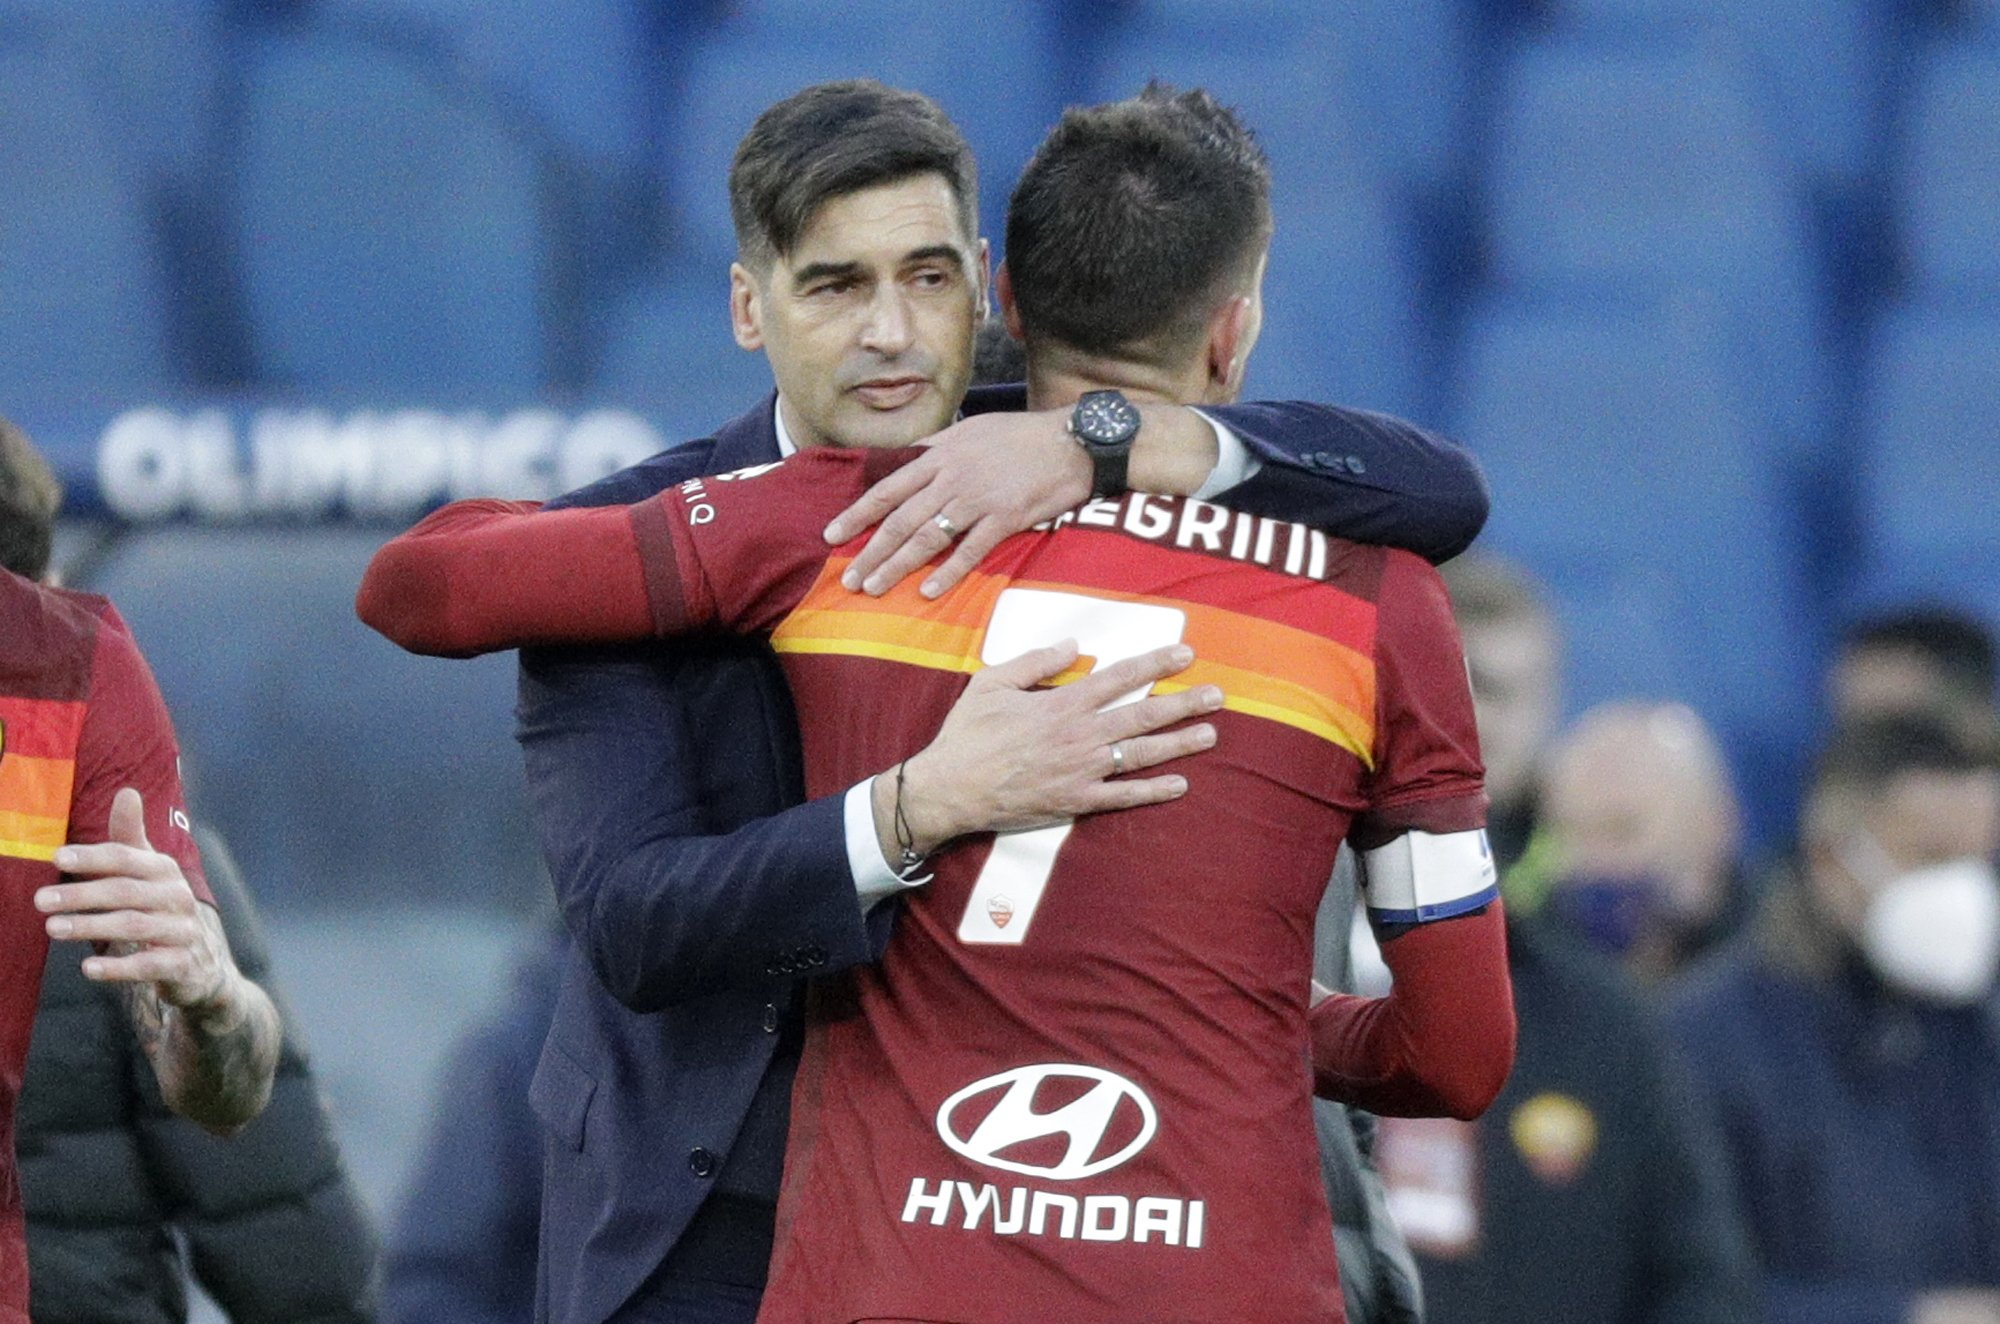 Embattled Roma gets some relief with 4-3 win over Spezia